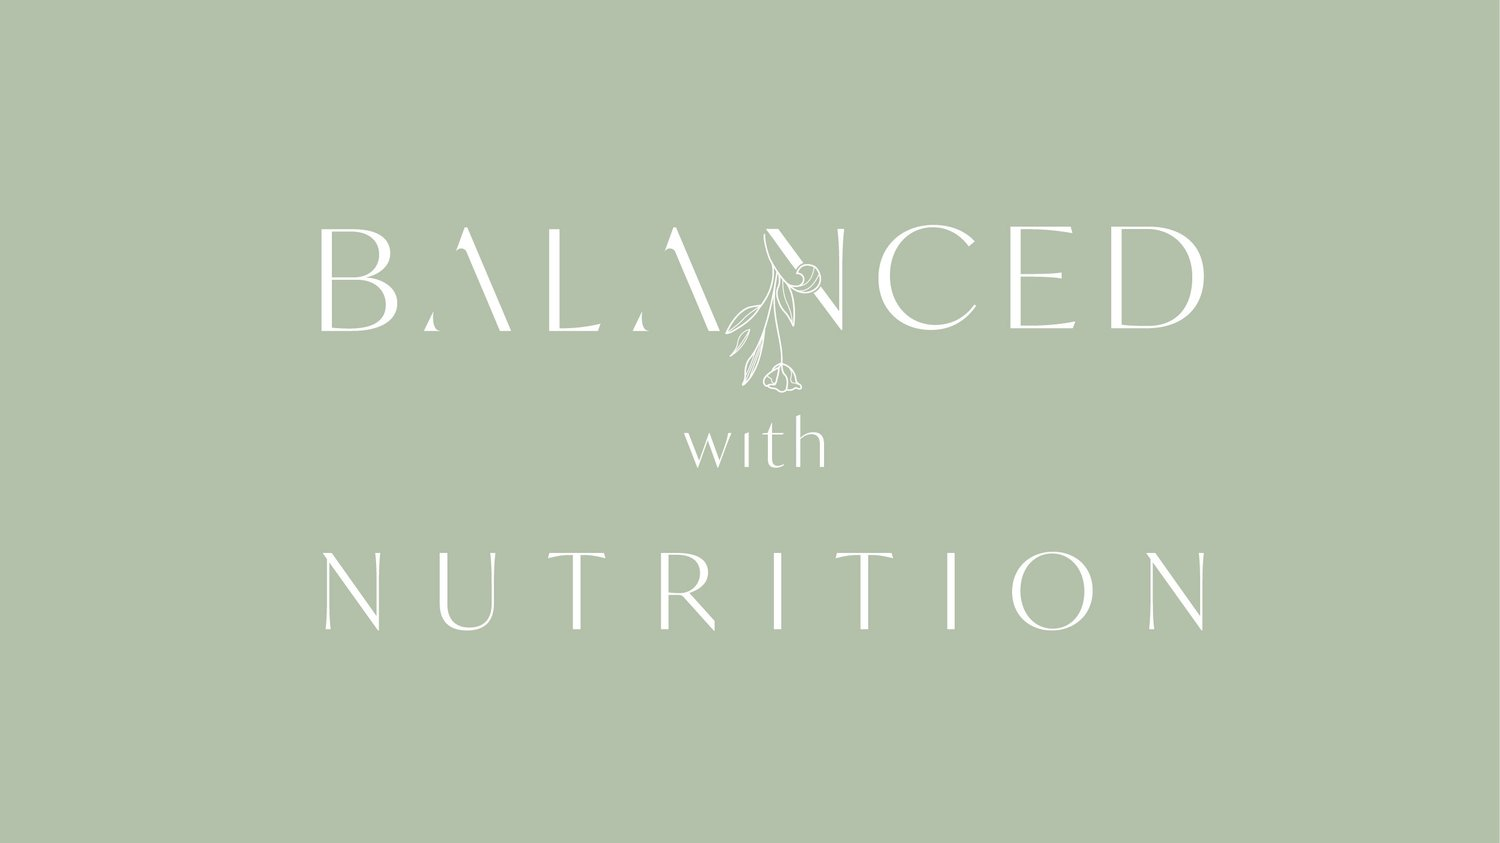 Balanced with Nutrition